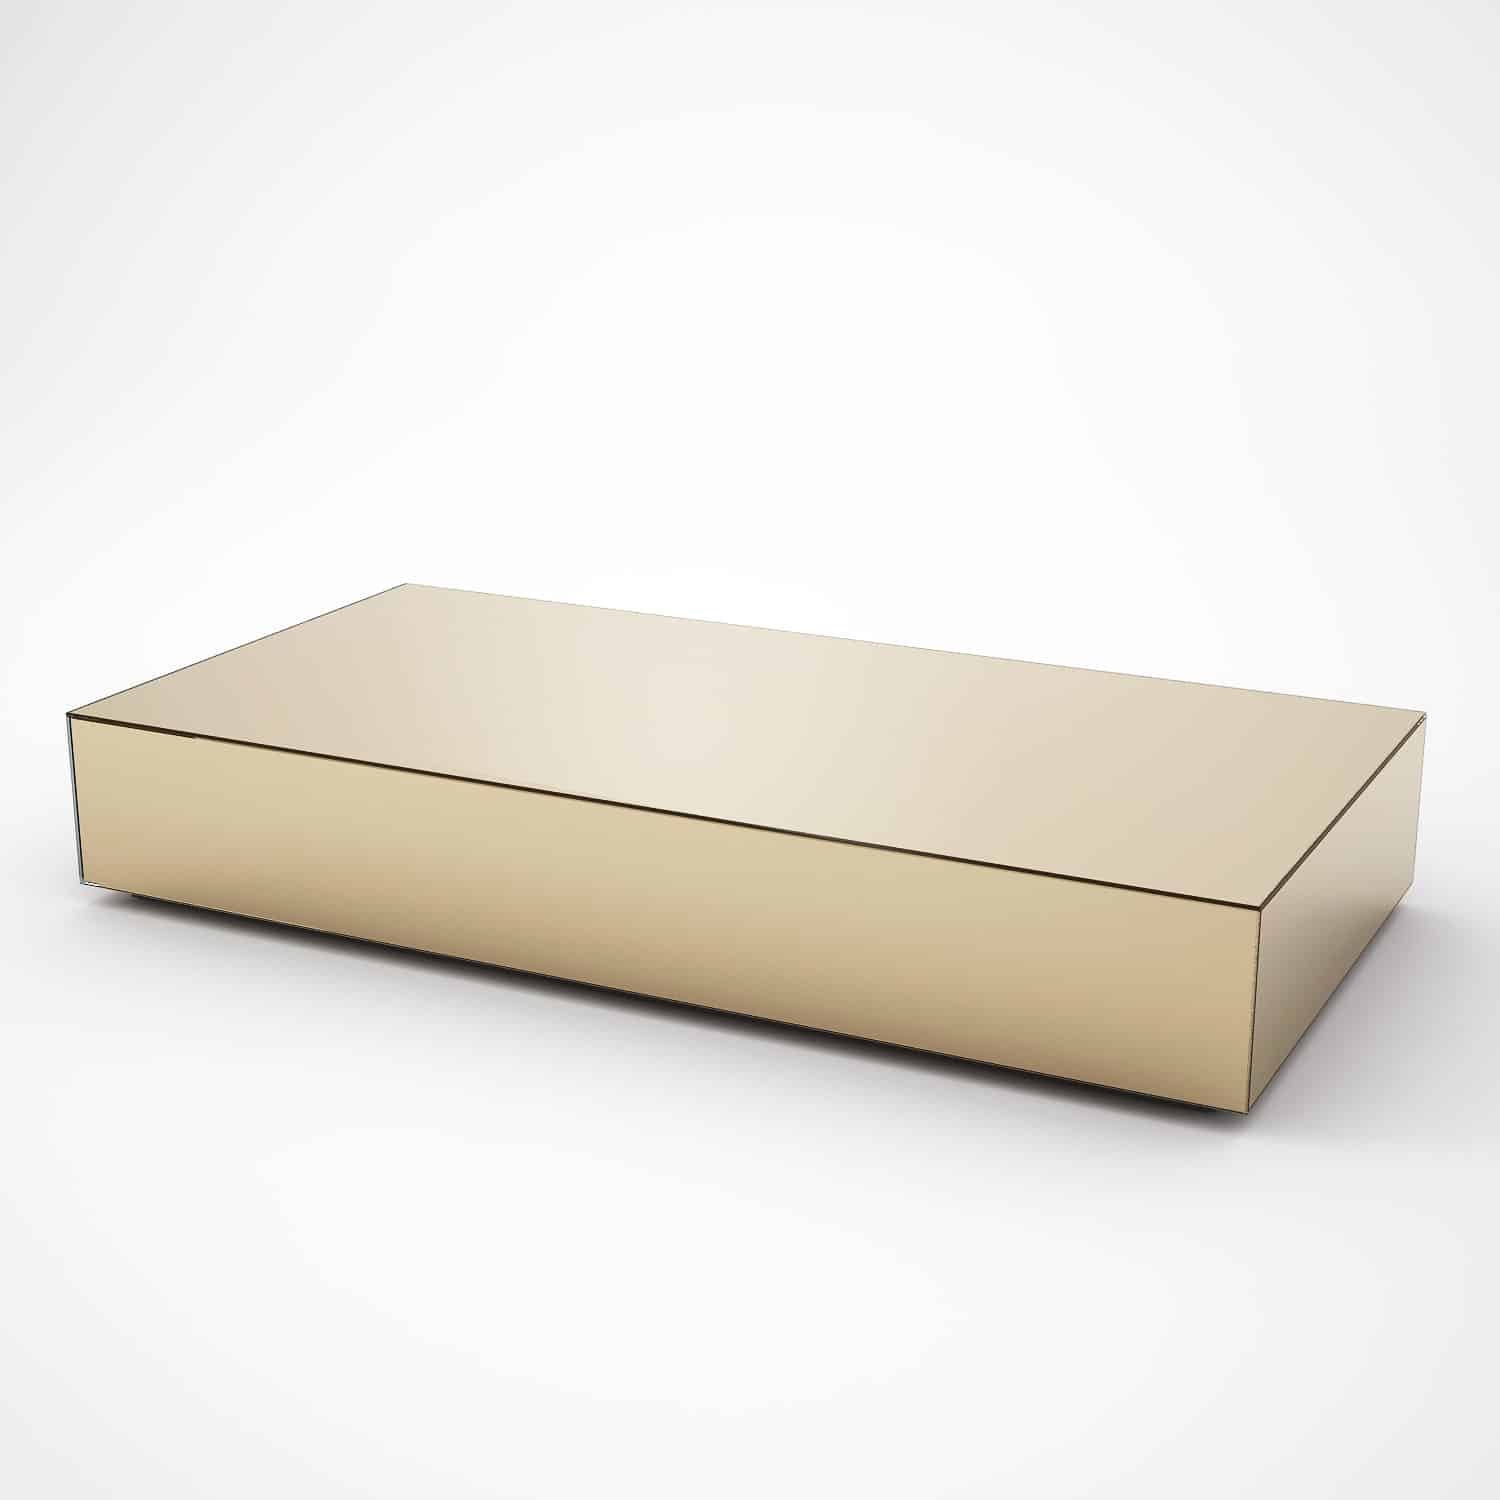 Rectangular Glass Coffee Tables Uk: Rectangular Bronze Mirrored Coffee Table By MirrorBox